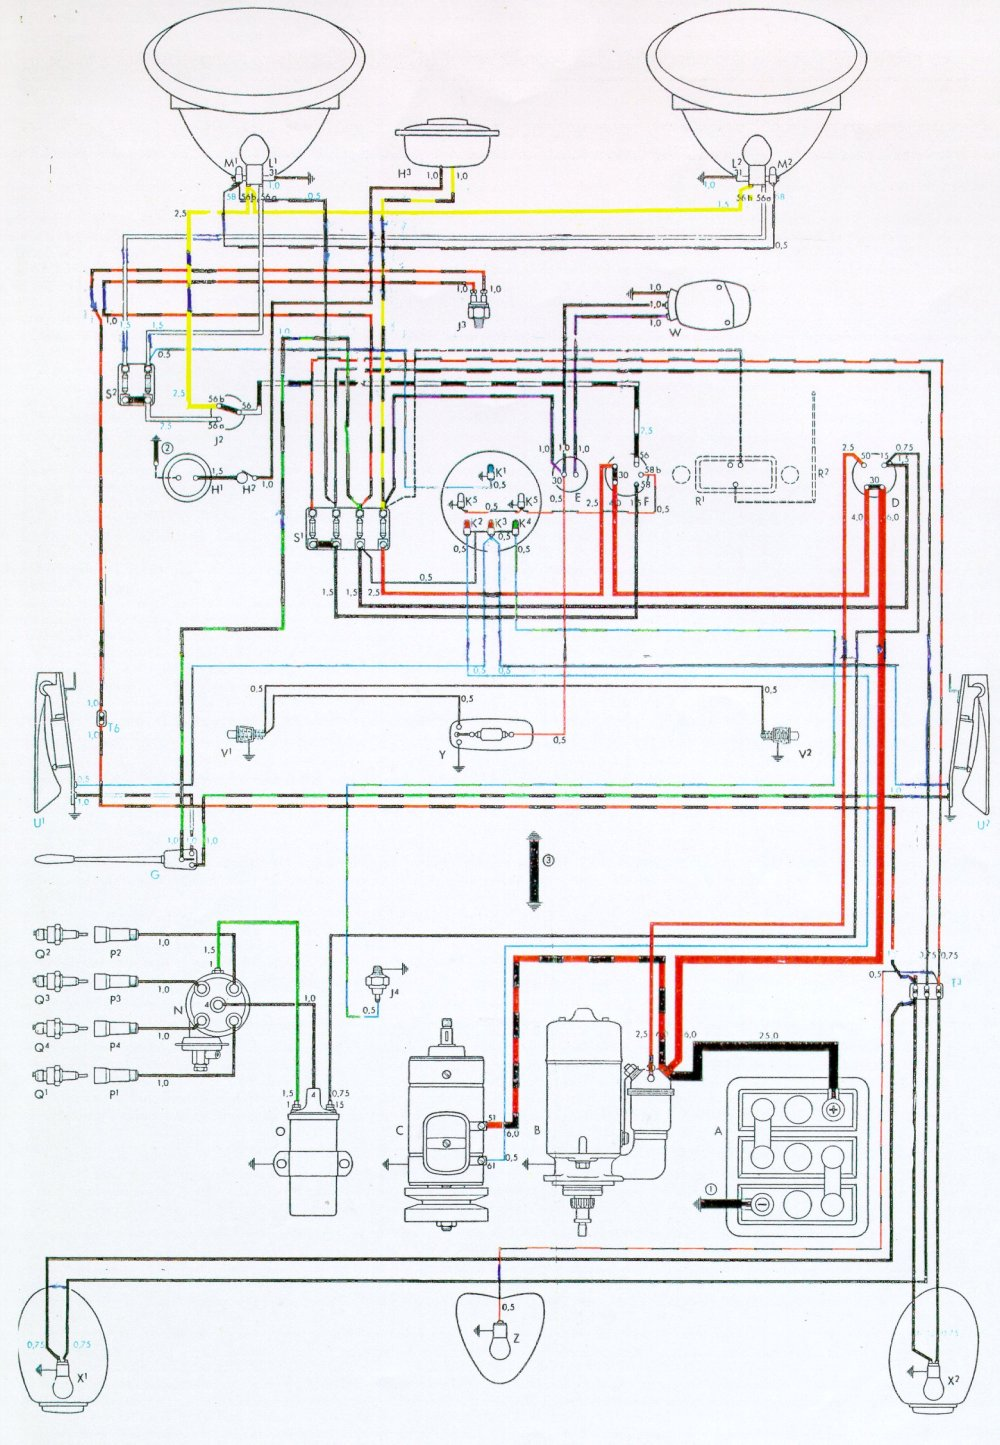 medium resolution of vintagebus com vw bus and other wiring diagrams wiring diagram for air cooled vw